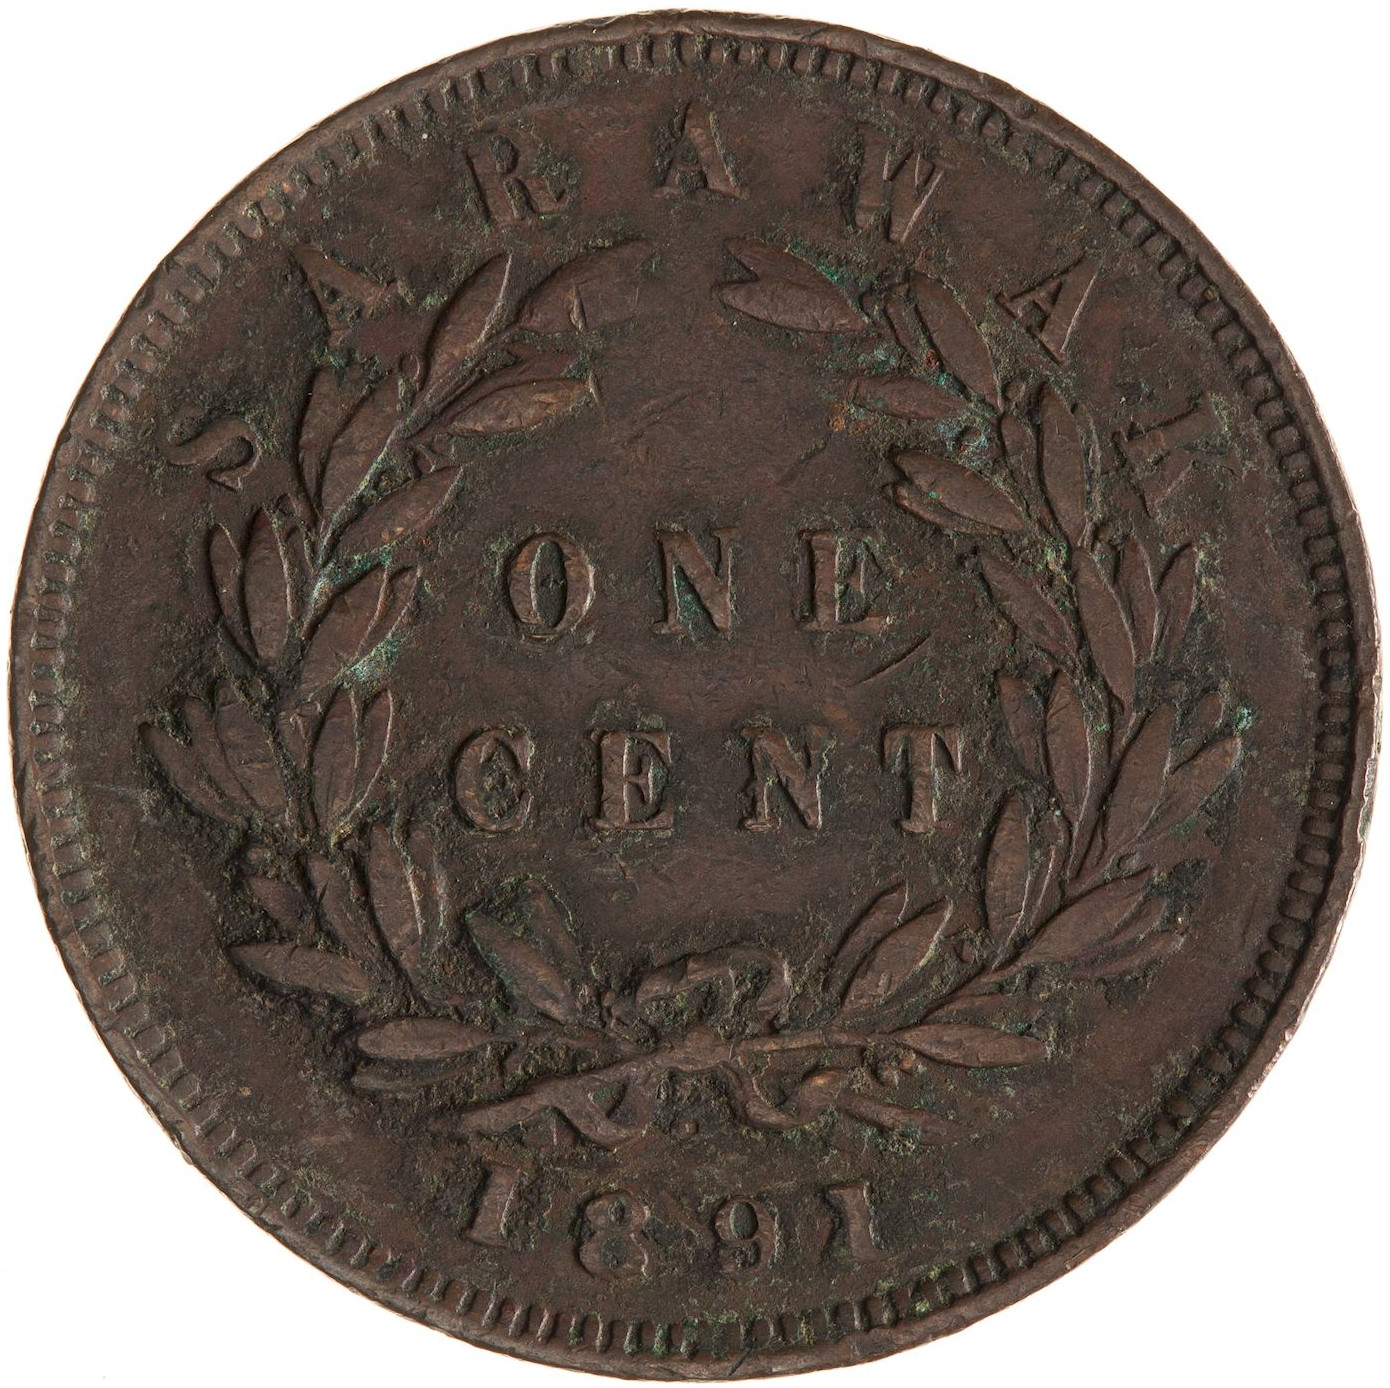 One Cent 1891: Photo Coin - 1 Cent, Sarawak, 1891